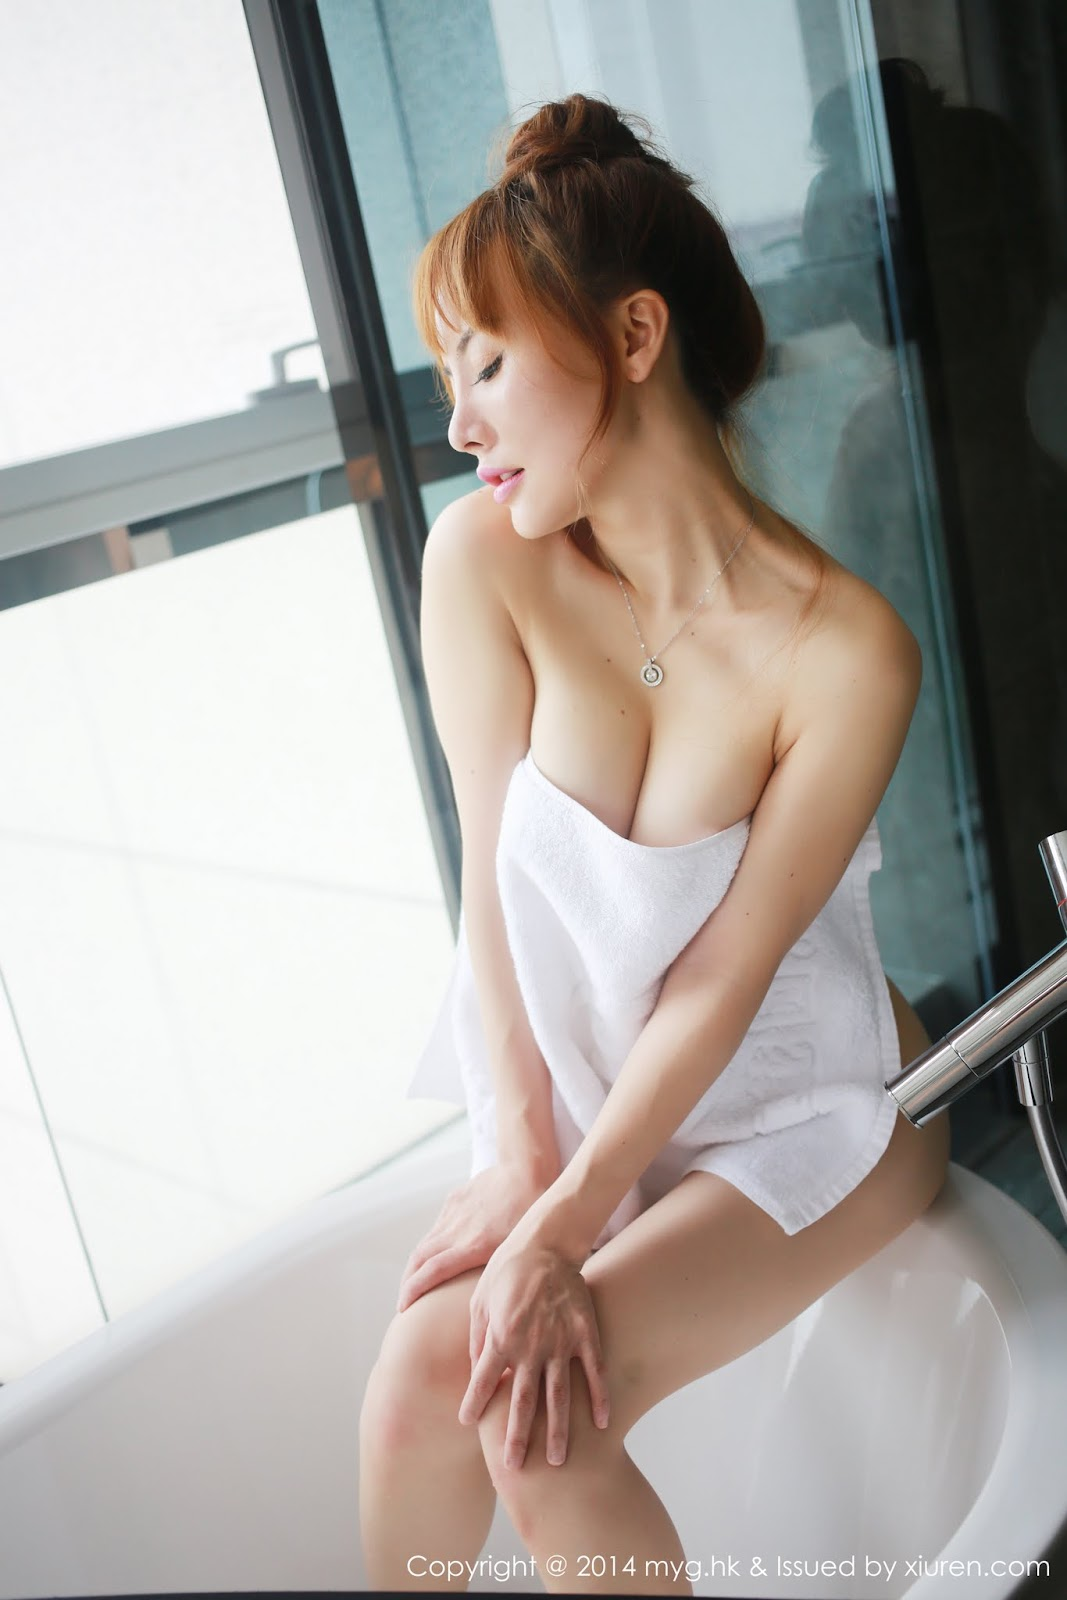 10070 - Photo Nude Hot MYGIRL VOL.32